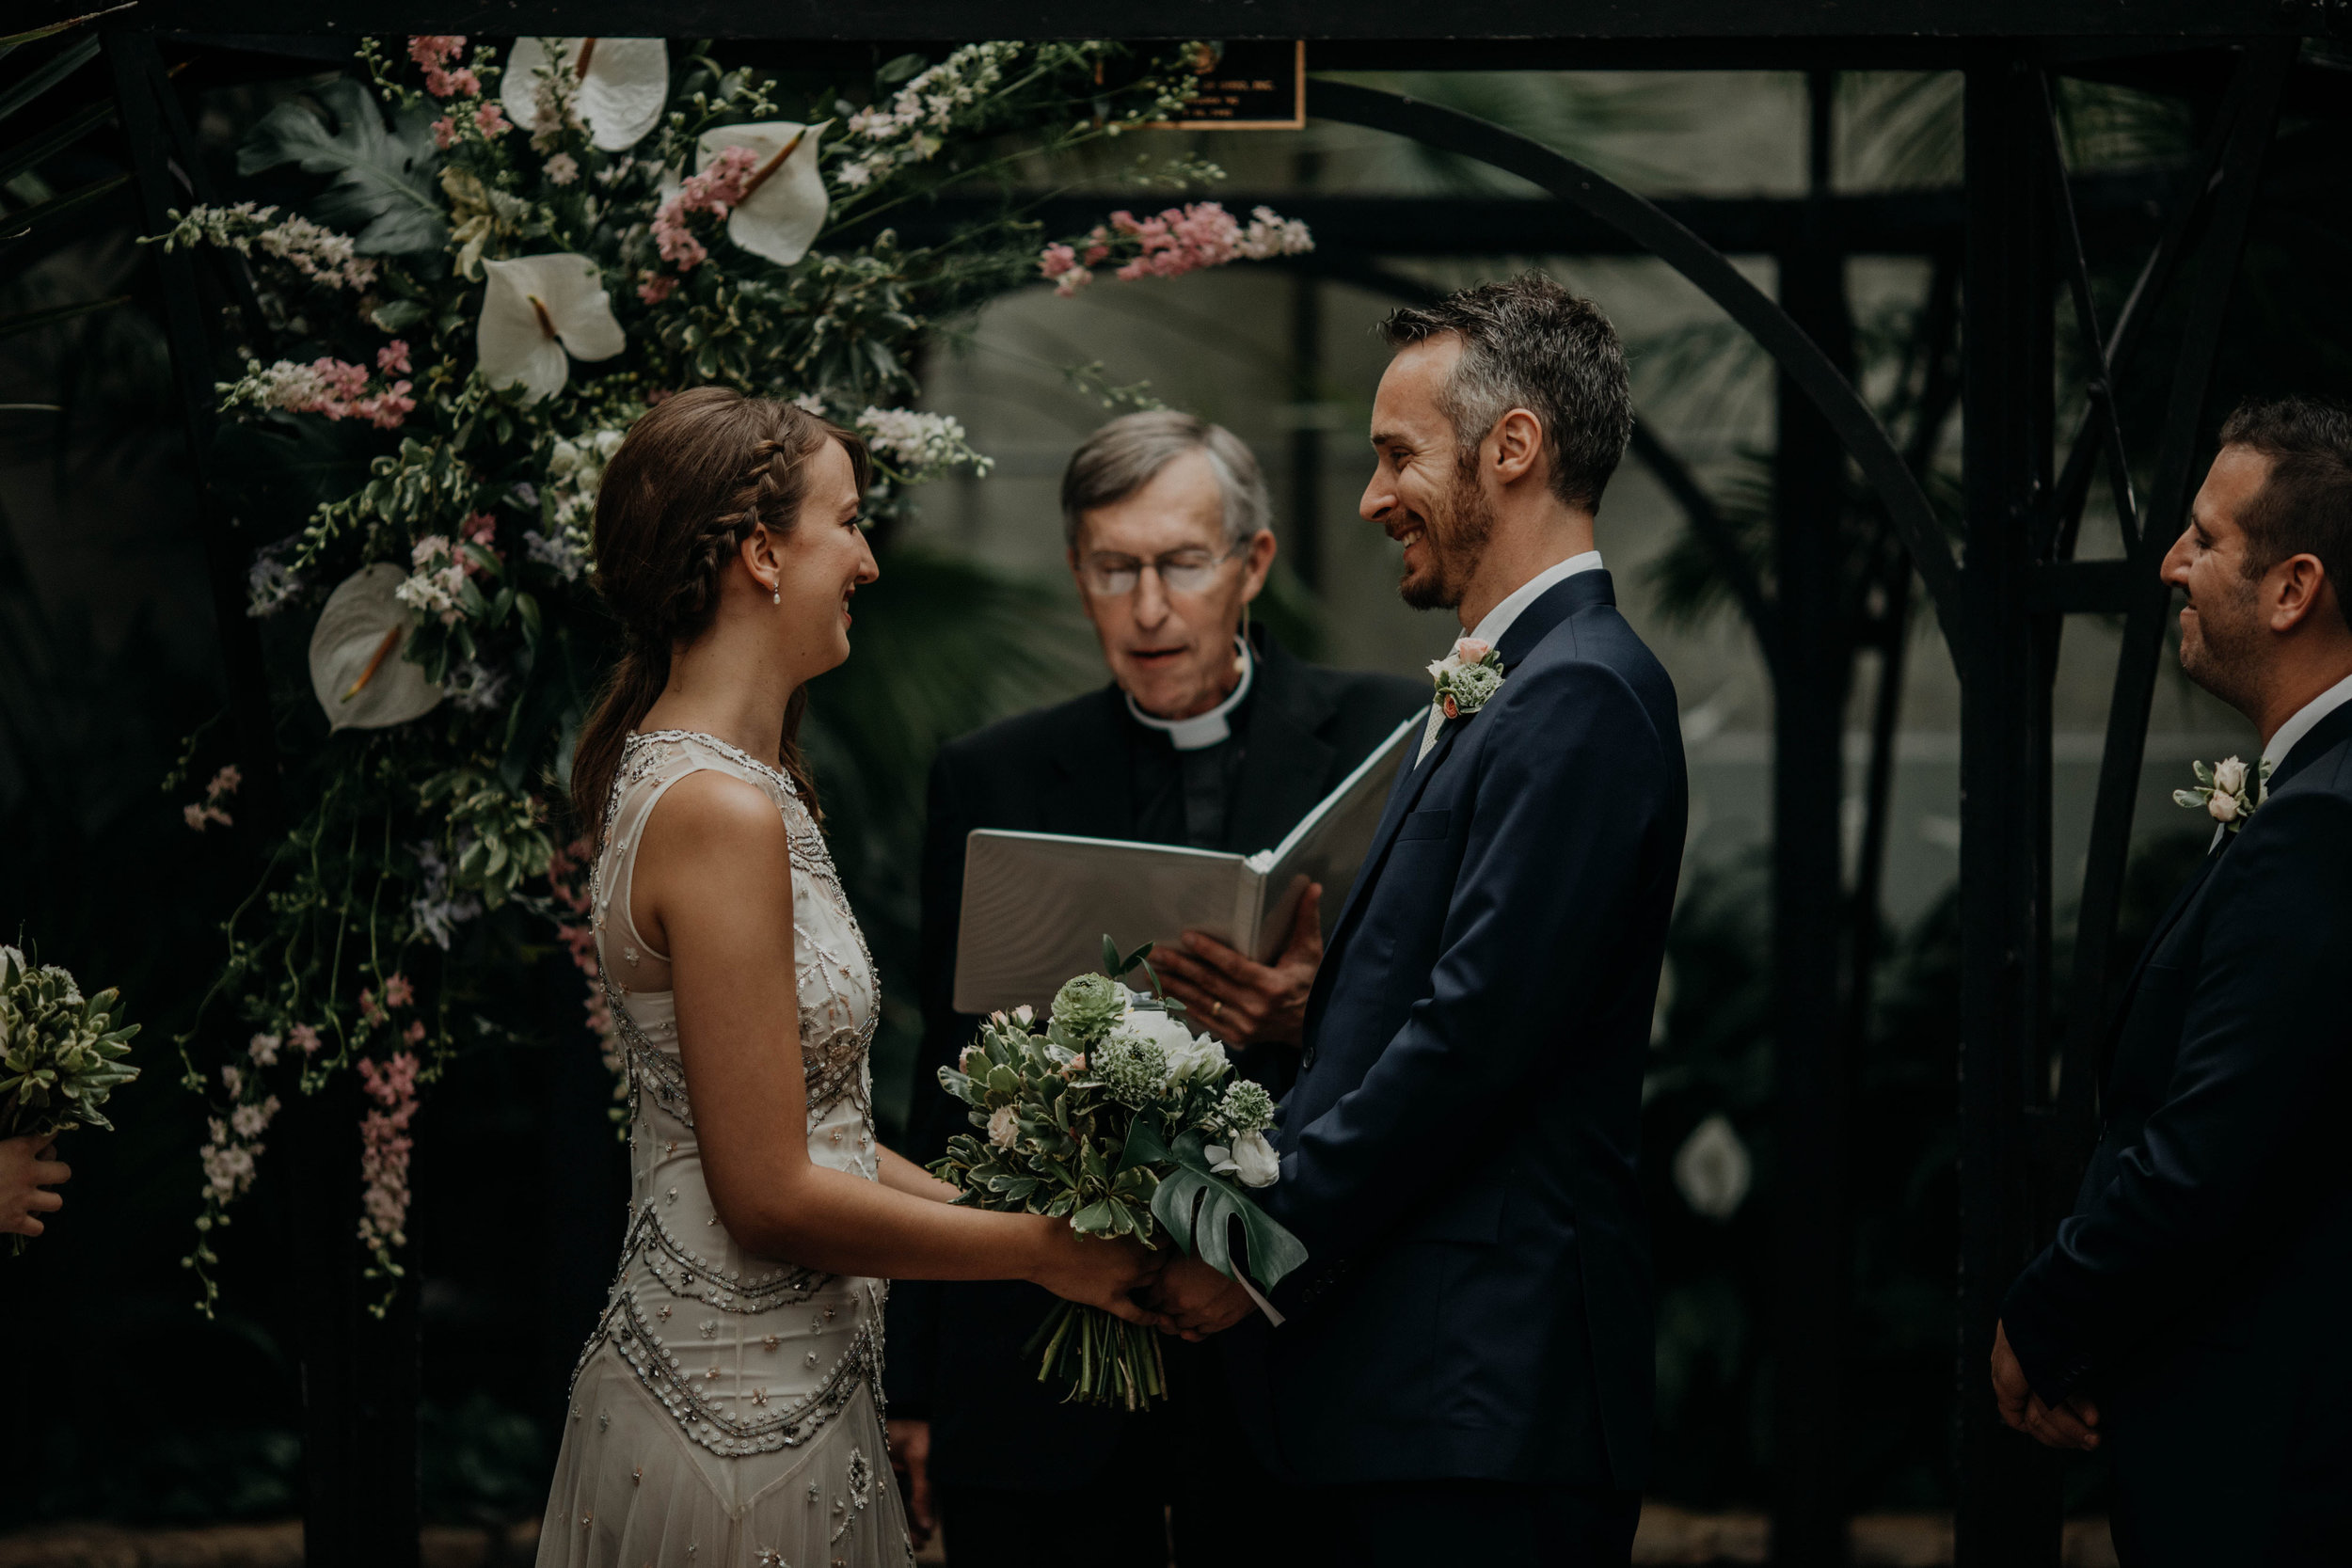 franklin park conservatory wedding columbus ohio wedding photographer grace e jones photography239.jpg